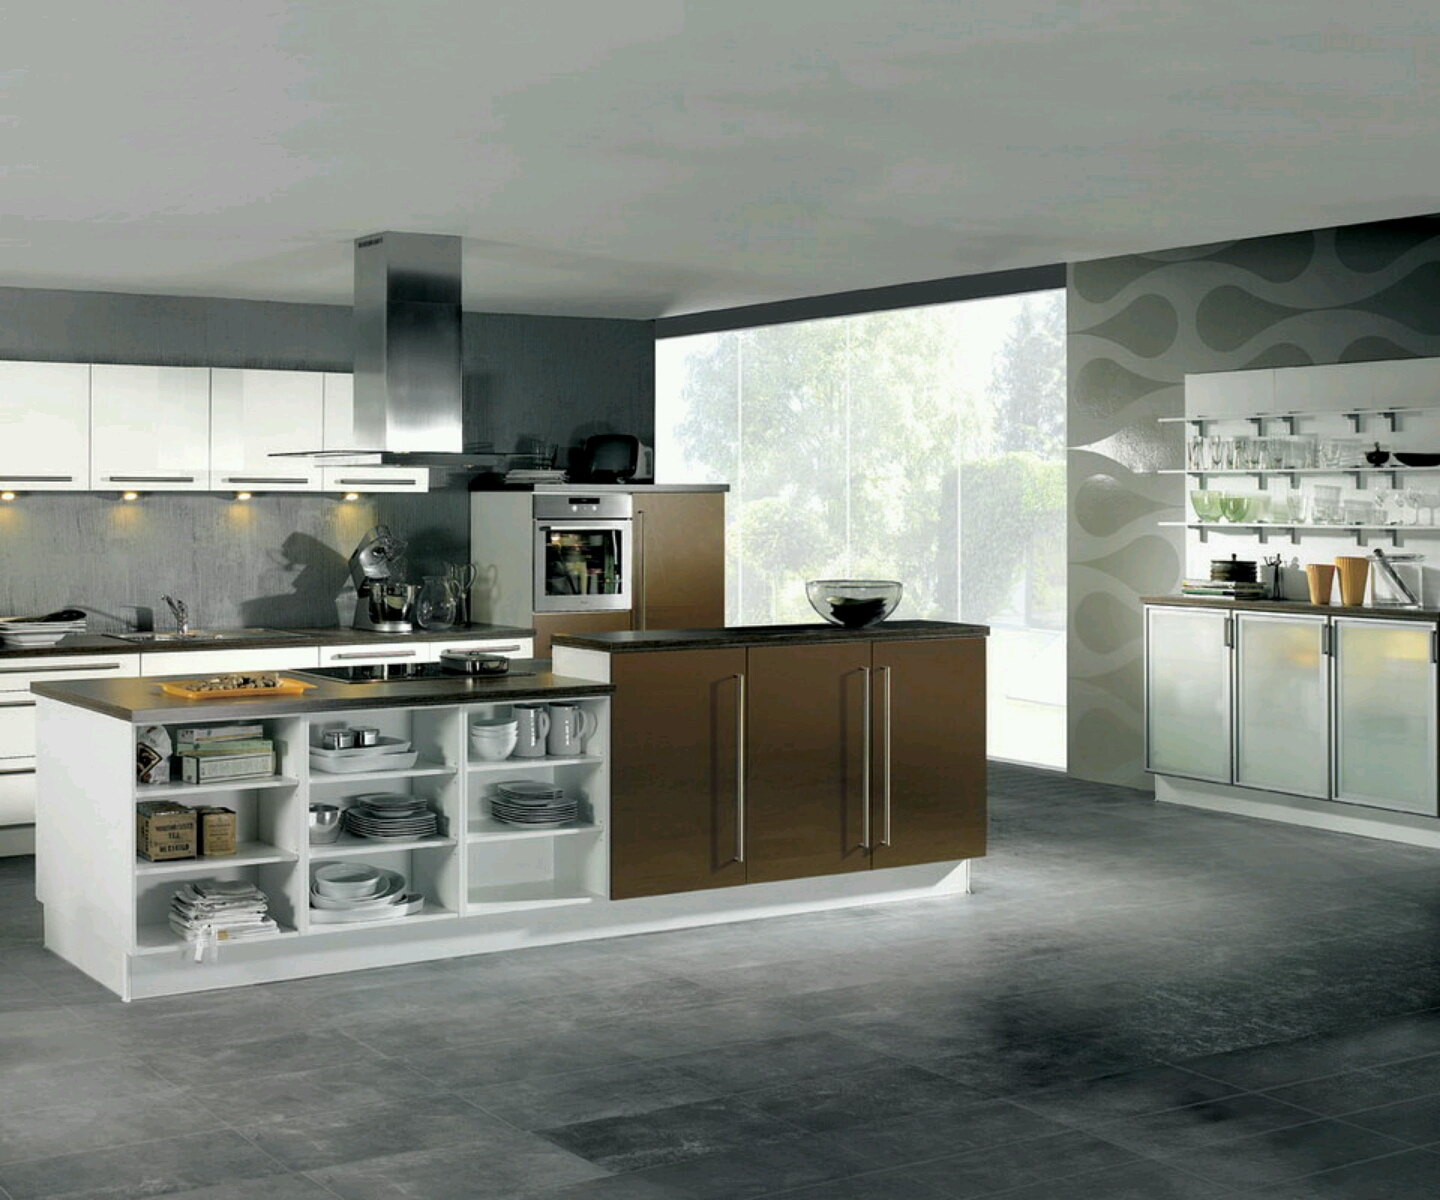 Ultra modern kitchen designs ideas modern home designs Modern design kitchen designs